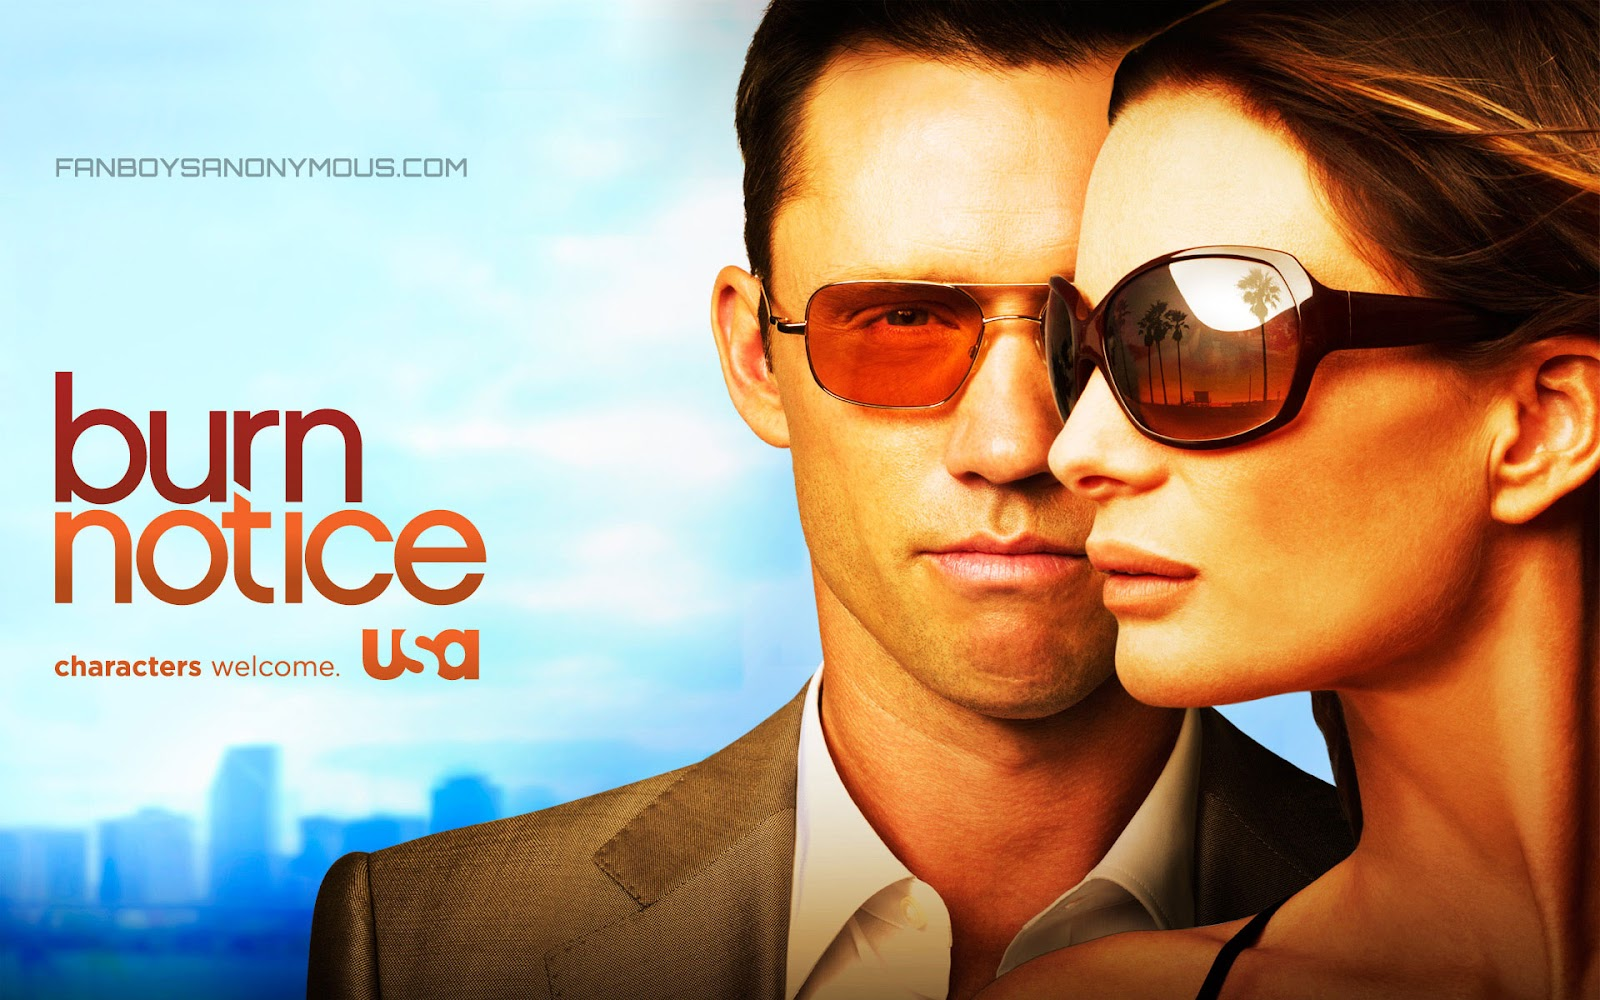 Stream Watch Burn Notice Series Online. Download Burn Notice Episodes Torrent.